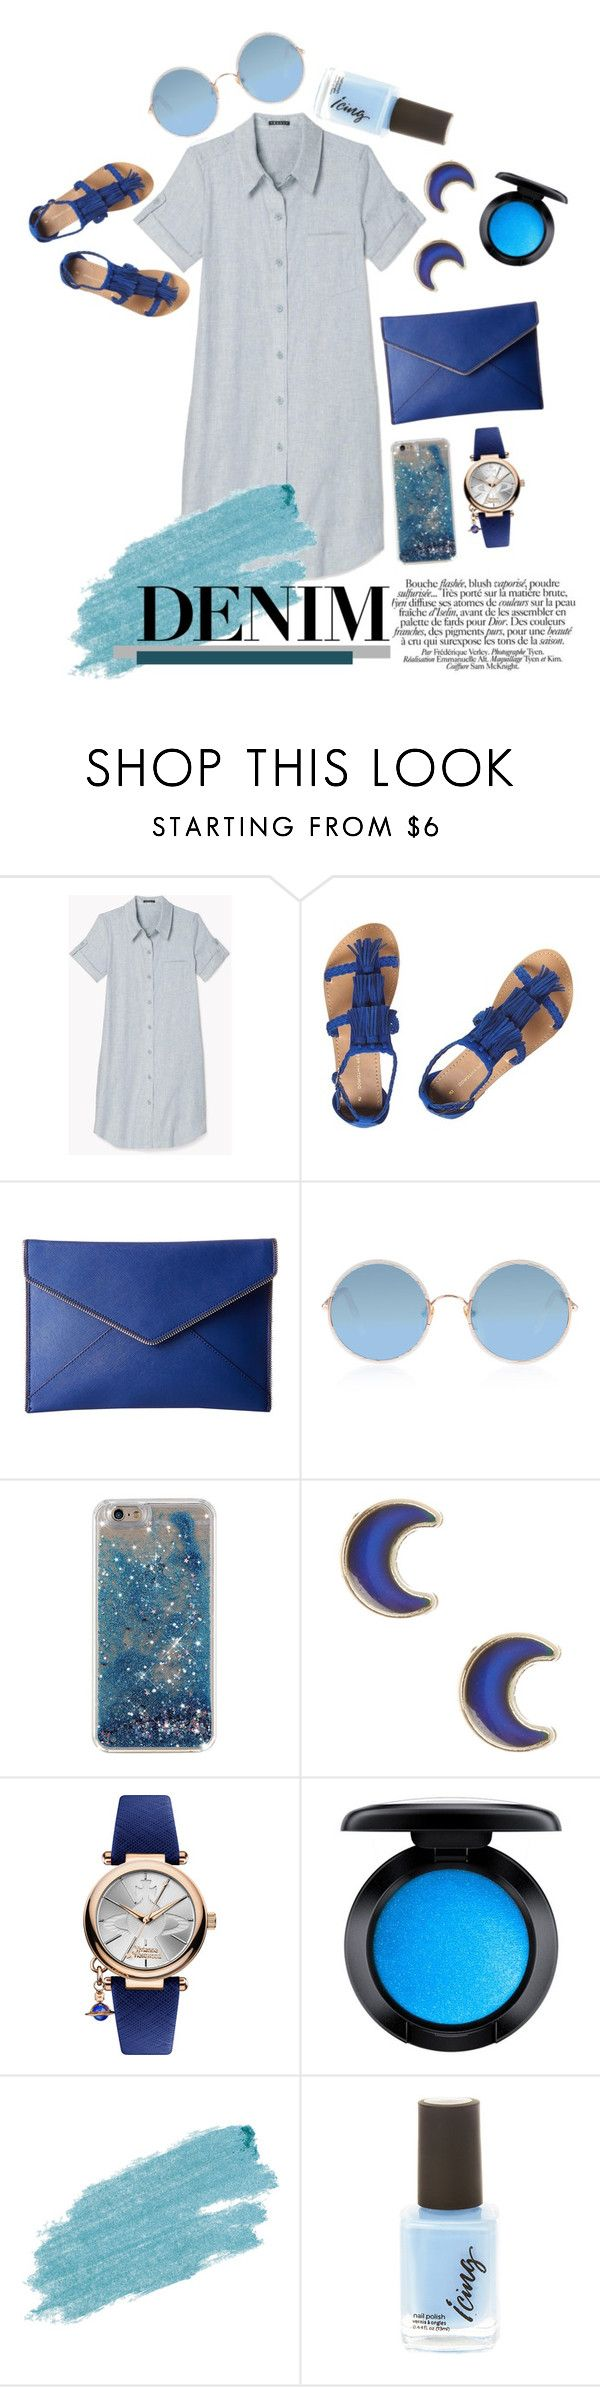 """Denim Shirtdress"" by karimaputri on Polyvore featuring Dorothy Perkins, Rebecca Minkoff, Sunday Somewhere, claire's, Vivienne Westwood, MAC Cosmetics, Jane Iredale and shirtdress"